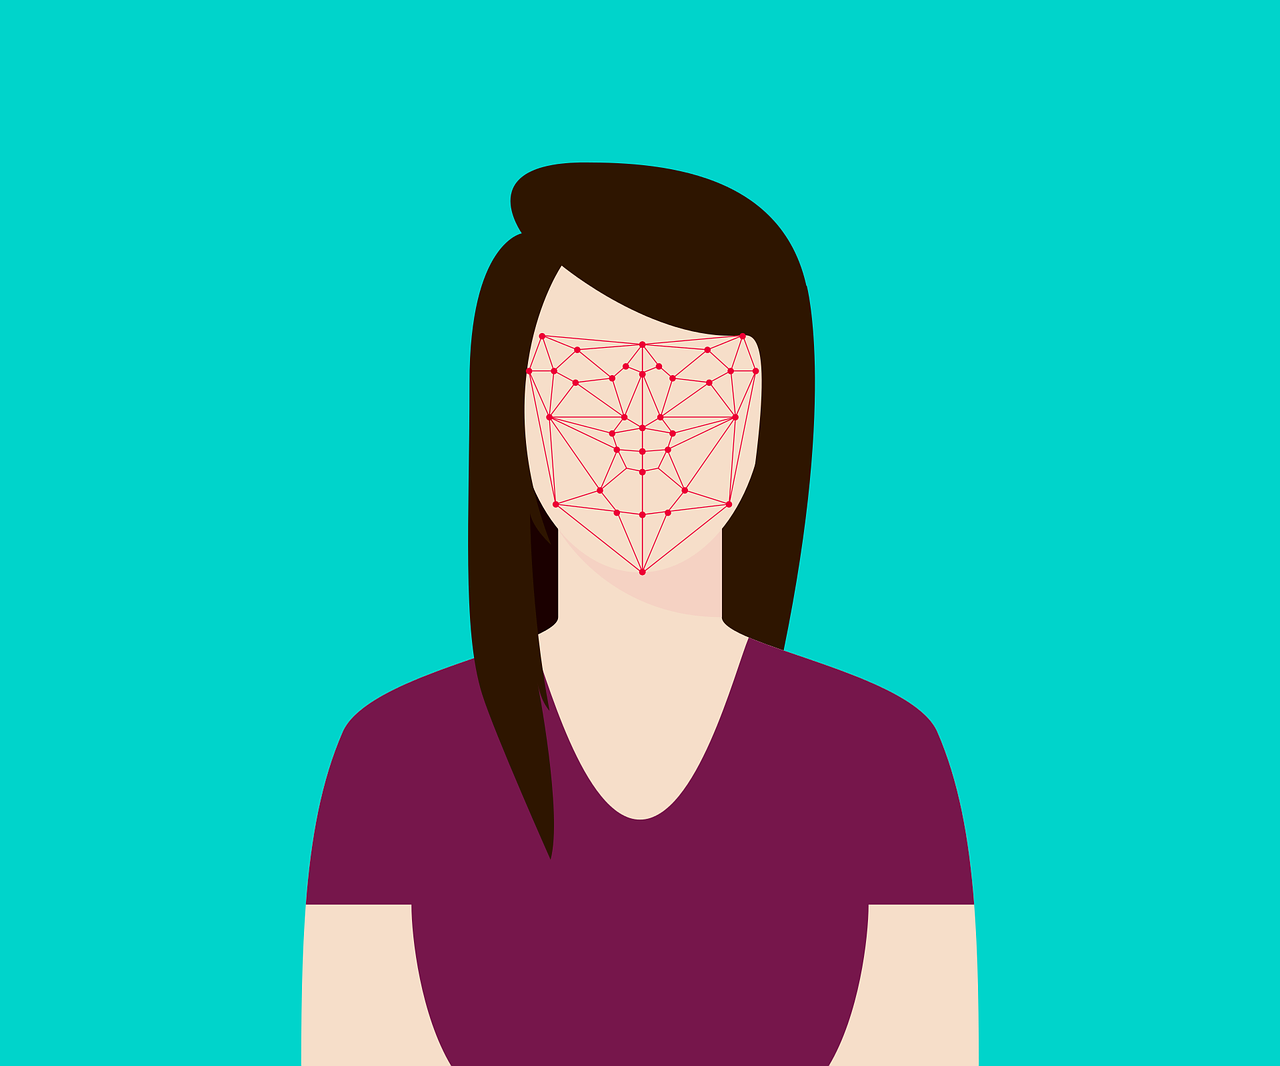 Illustration of a woman who's face is obscured with red lines symbolizing facial recognition technology.